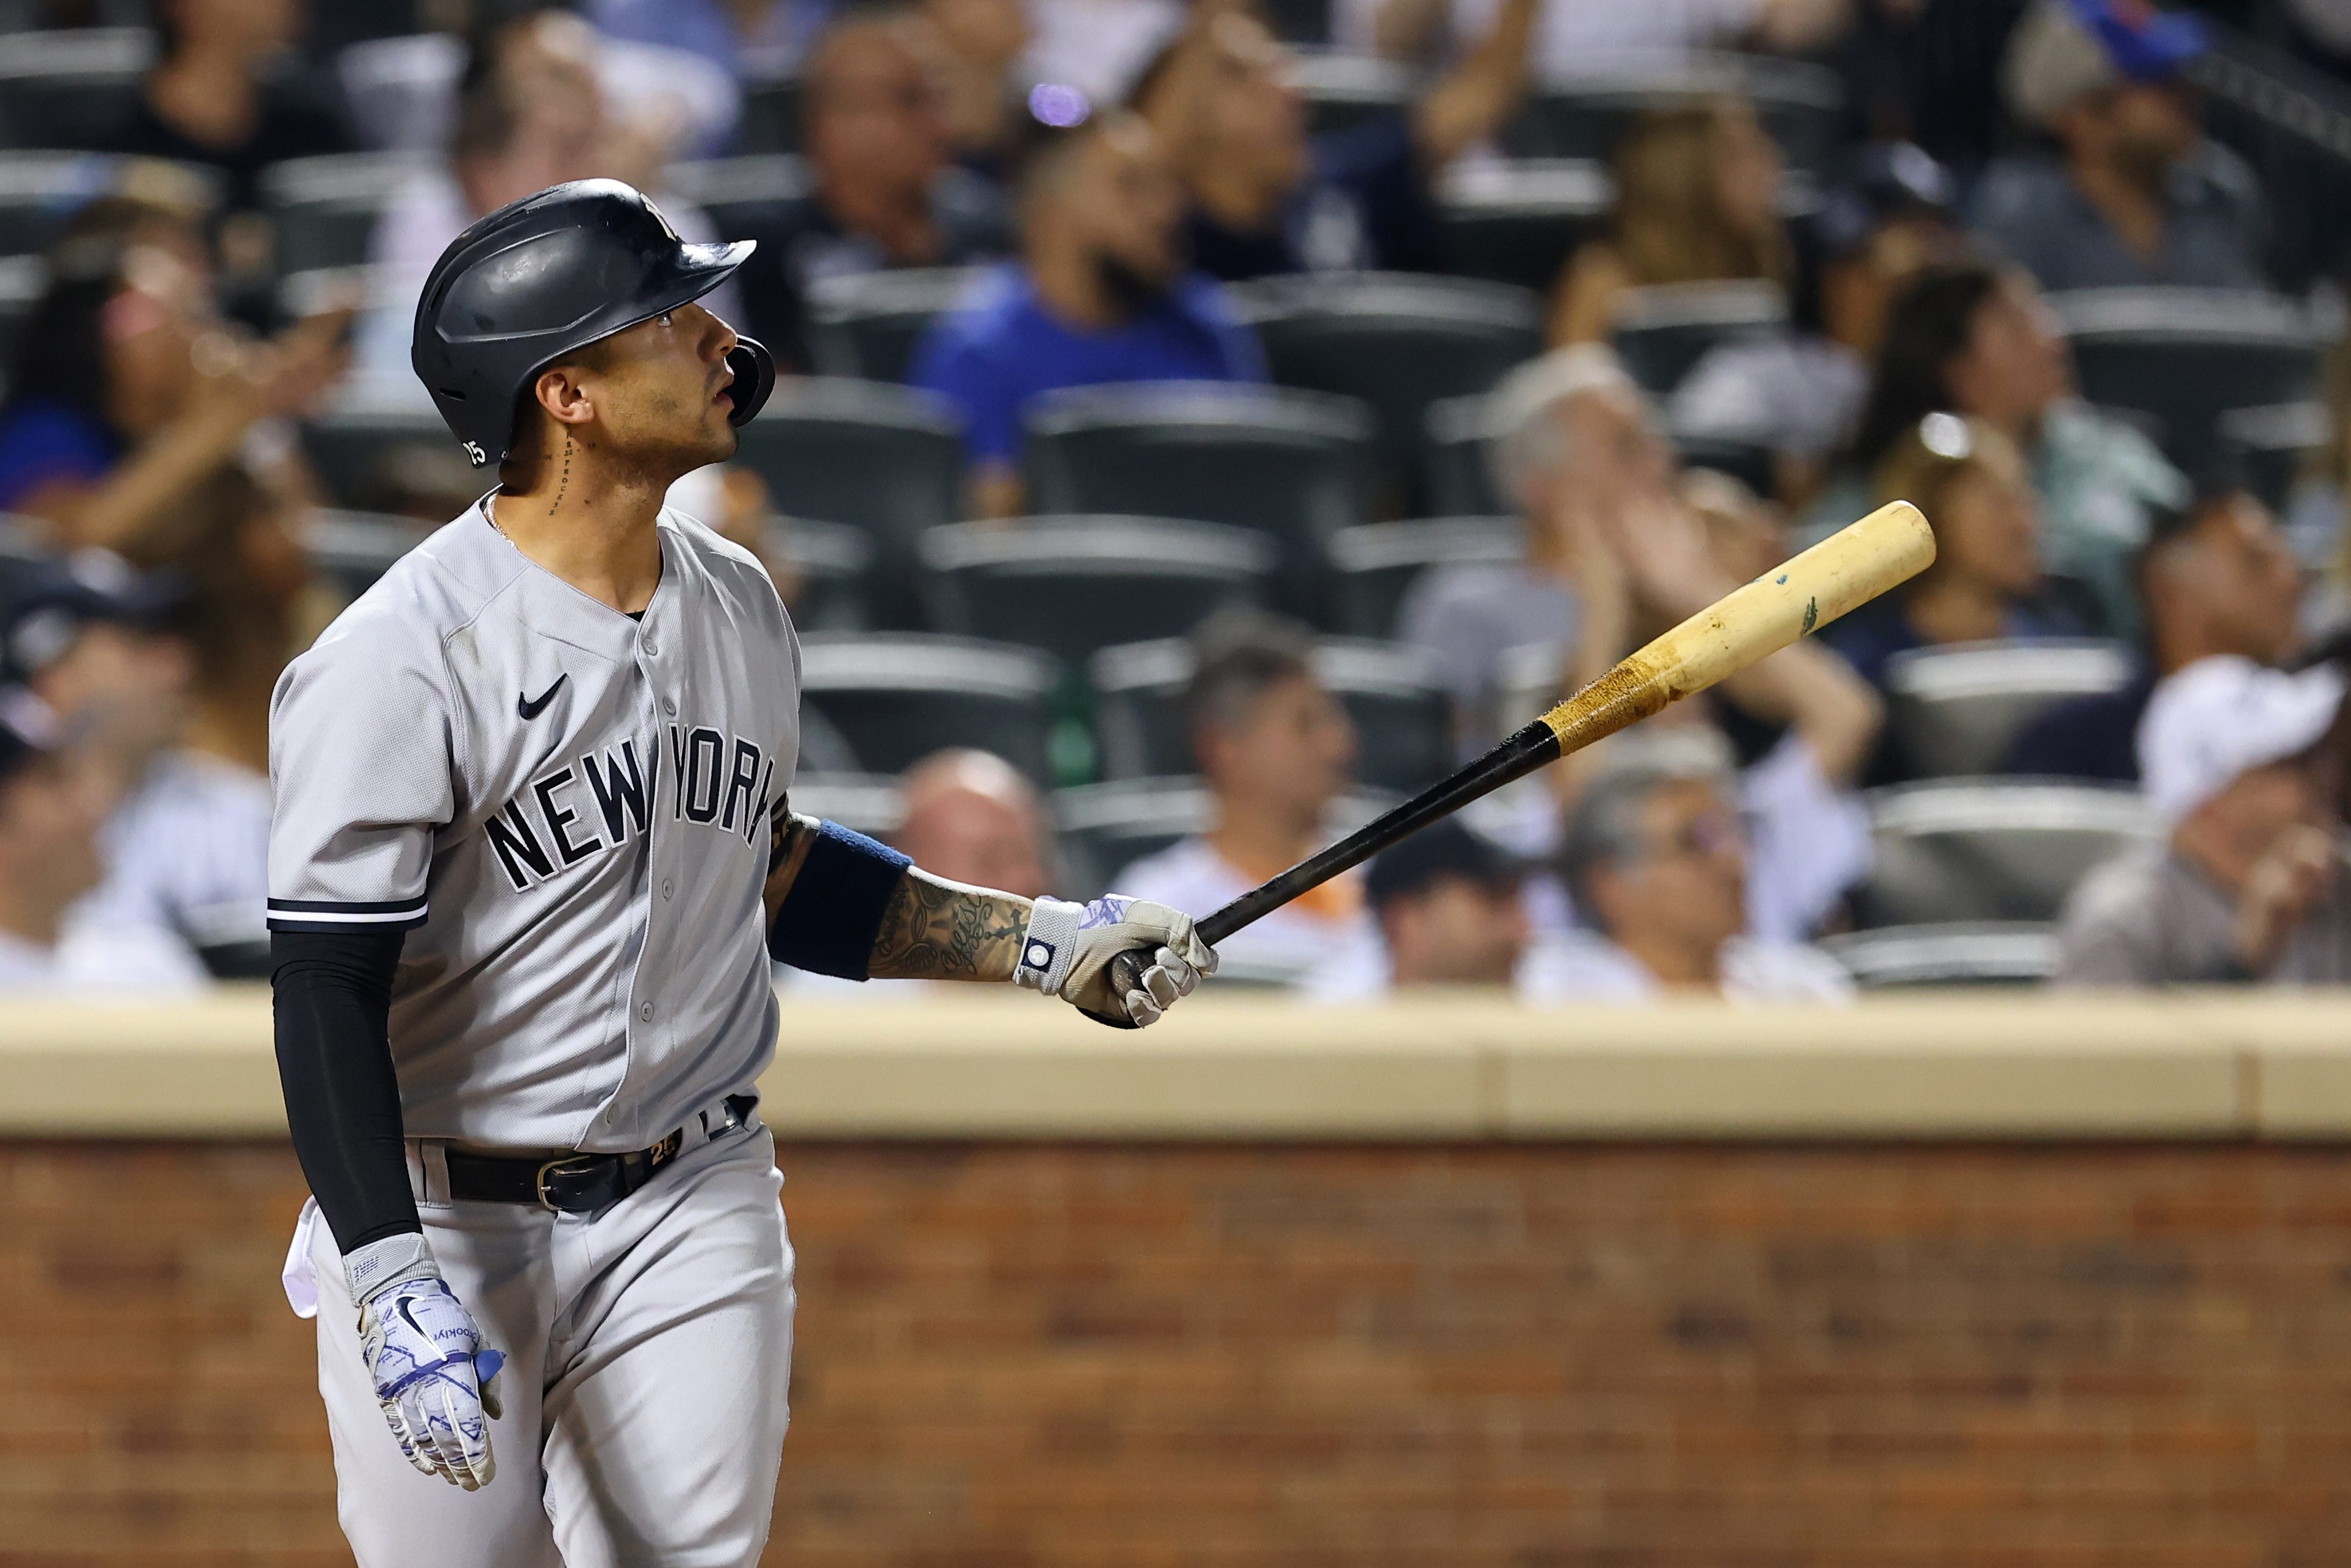 Gleyber Torres #25 of the New York Yankees watches the flight of his ball as he hits a two-run home run against the New York Mets during the sixth inning of a game at Citi Field on September 12, 2021 in New York City.